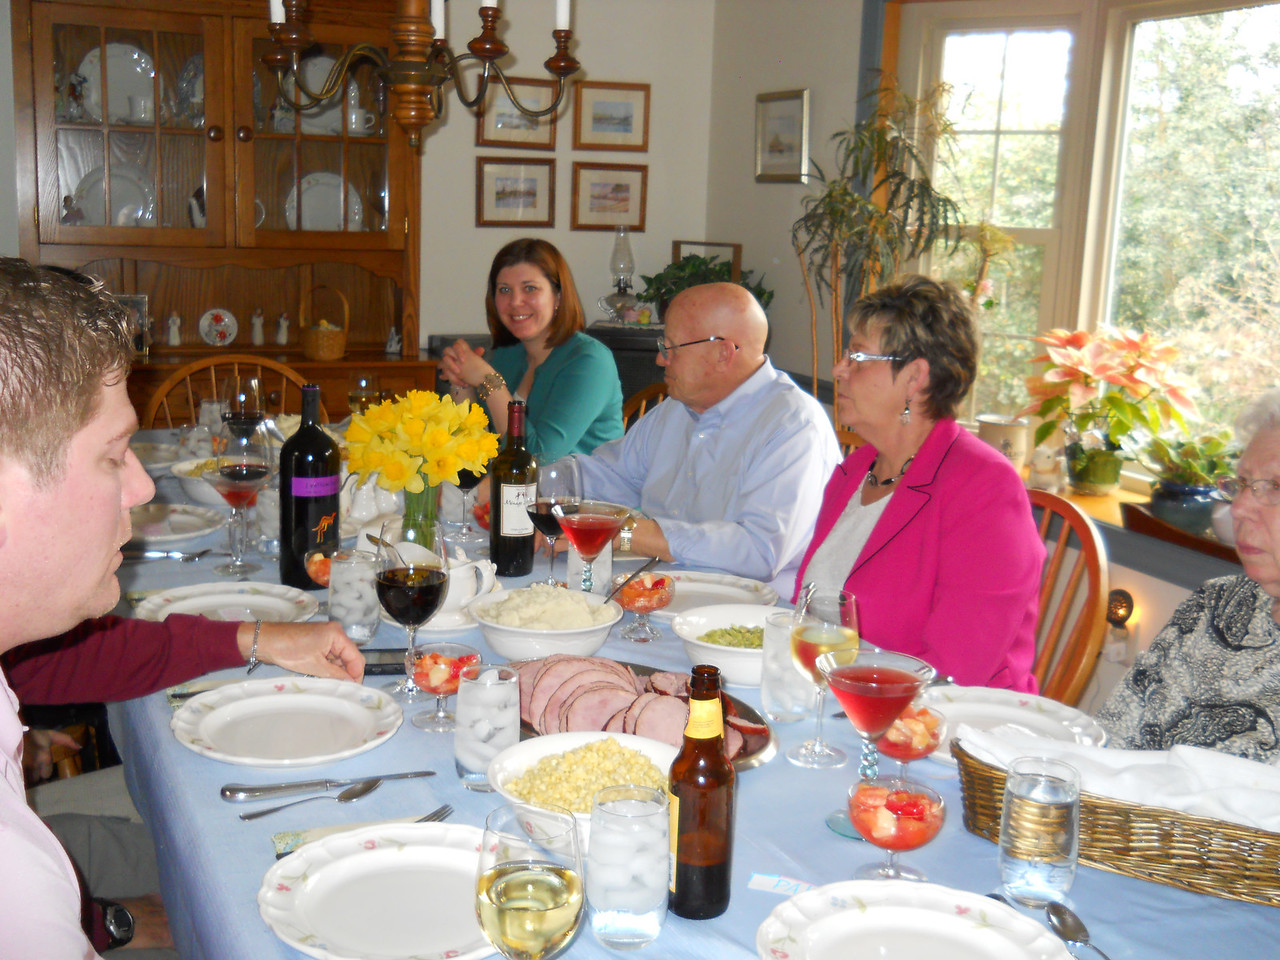 Feast time with Ilsa, John, Becky, and Nana, with Matt on the other side